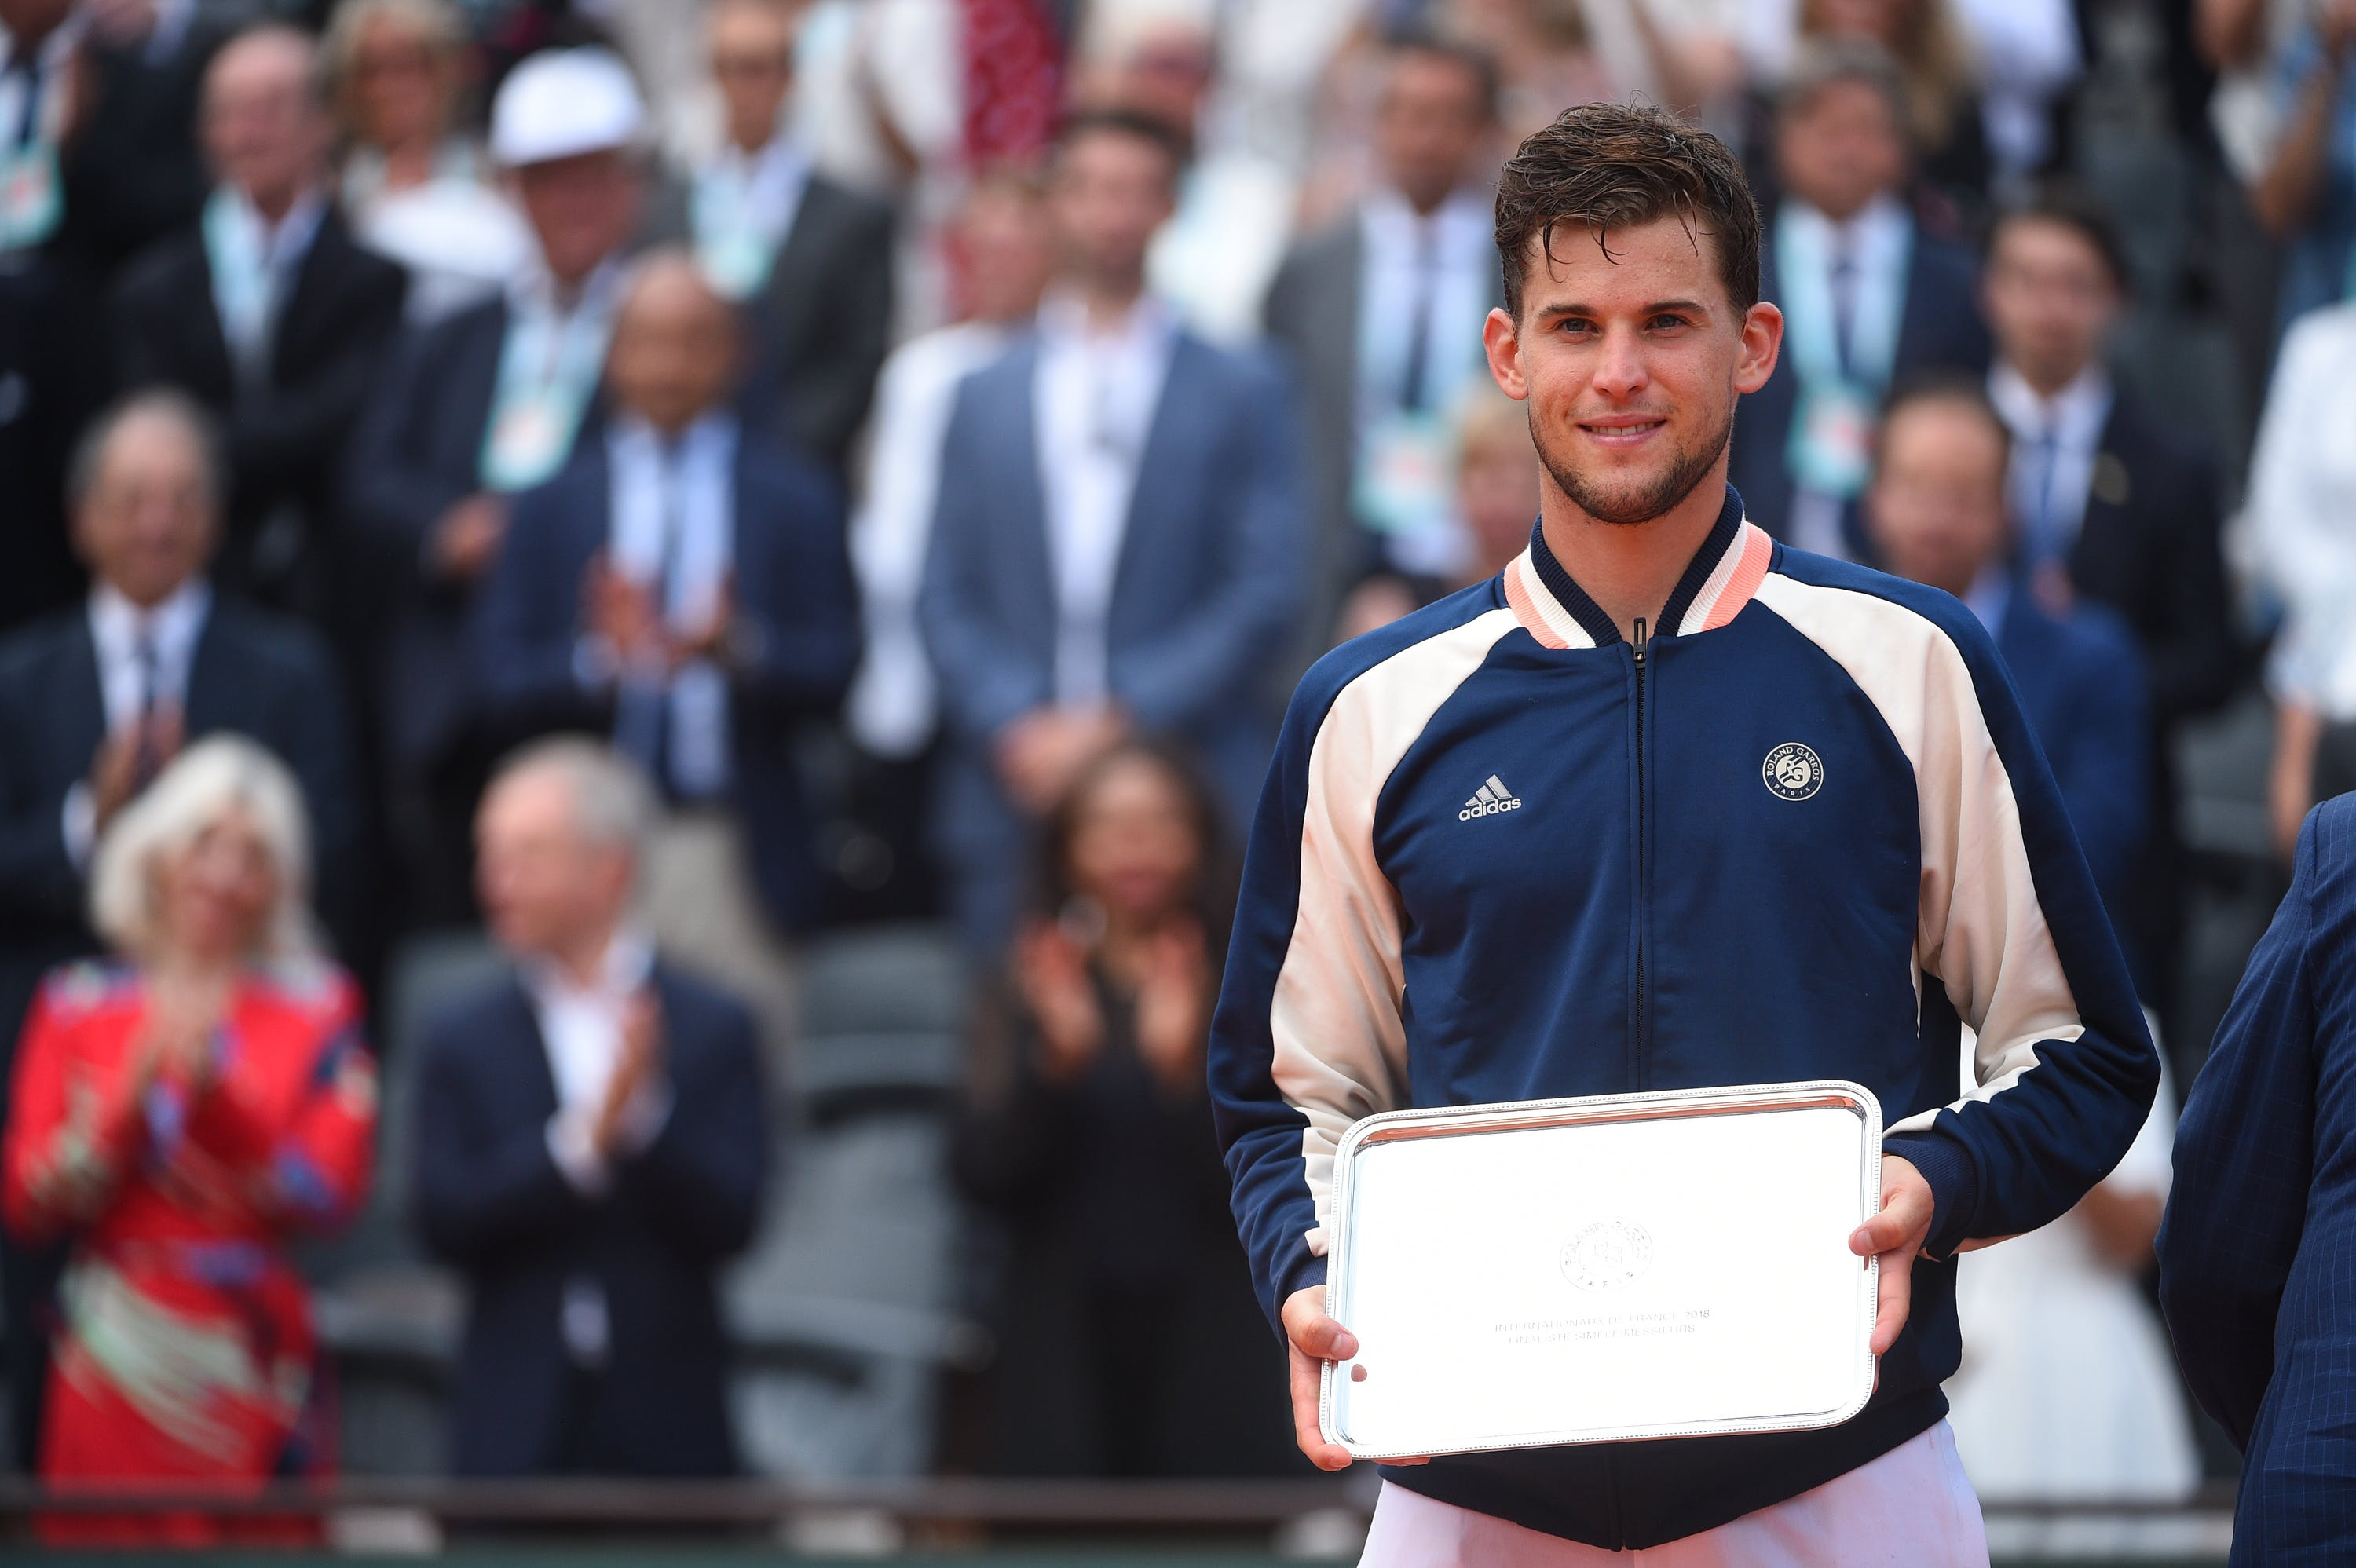 Dominic Thiem with his finalist's plate at Roland-Garros 2018